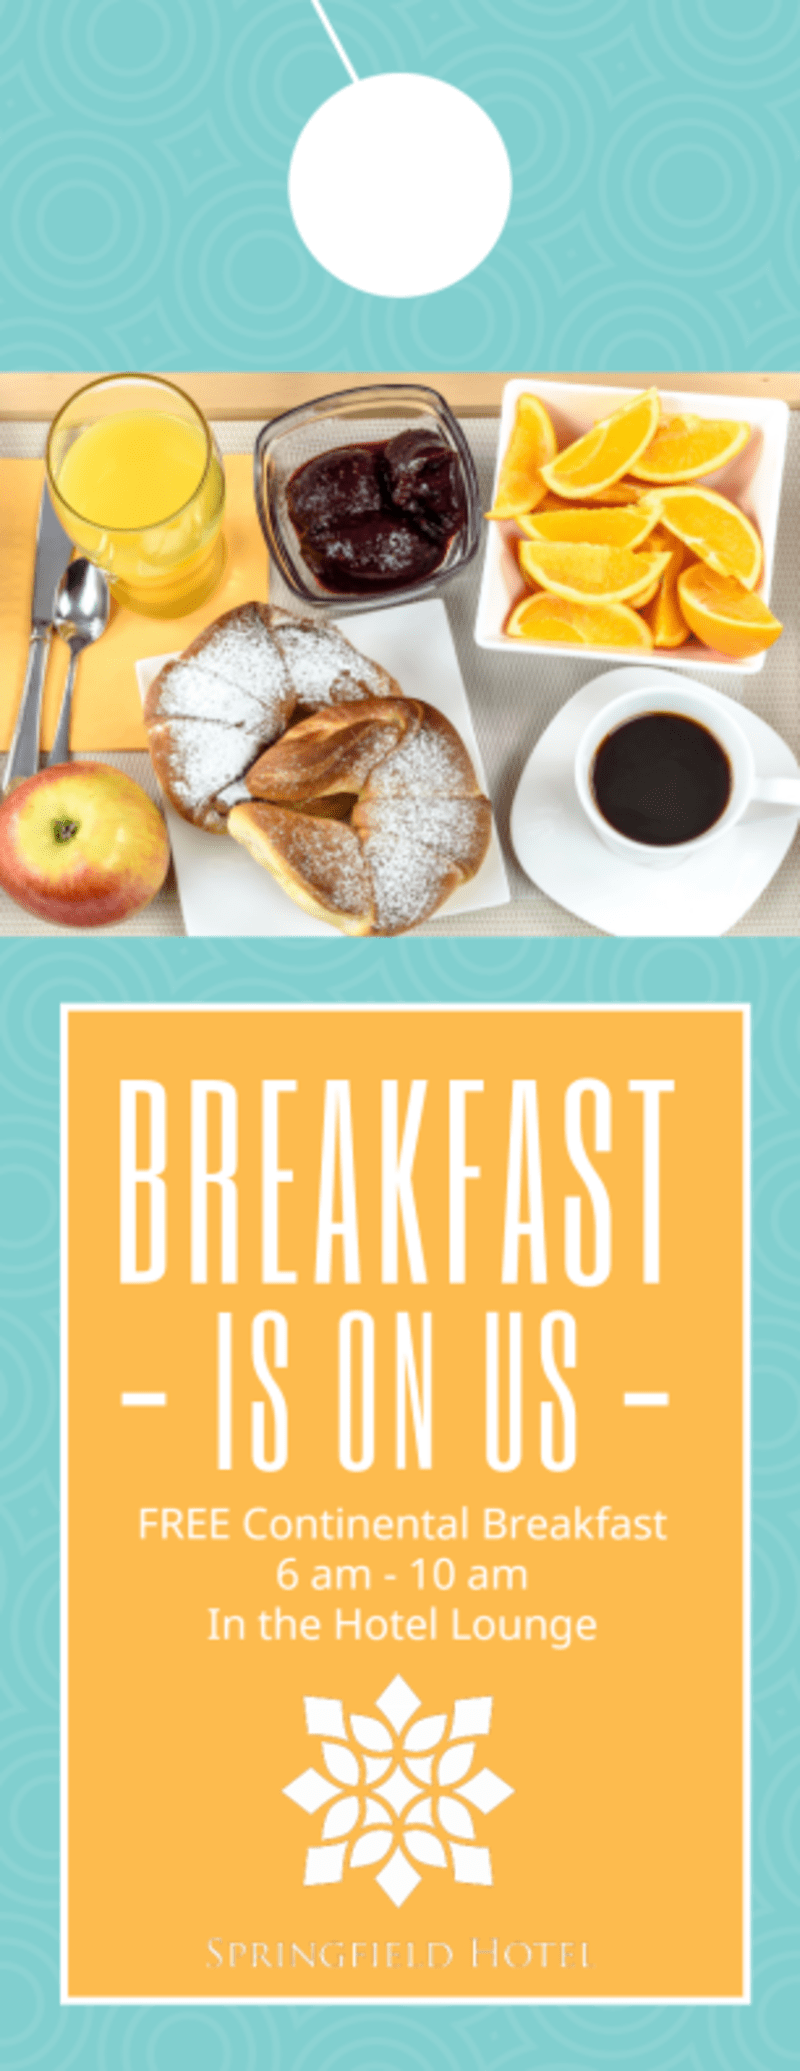 Hotel Breakfast Promo Door Hanger Template Preview 2